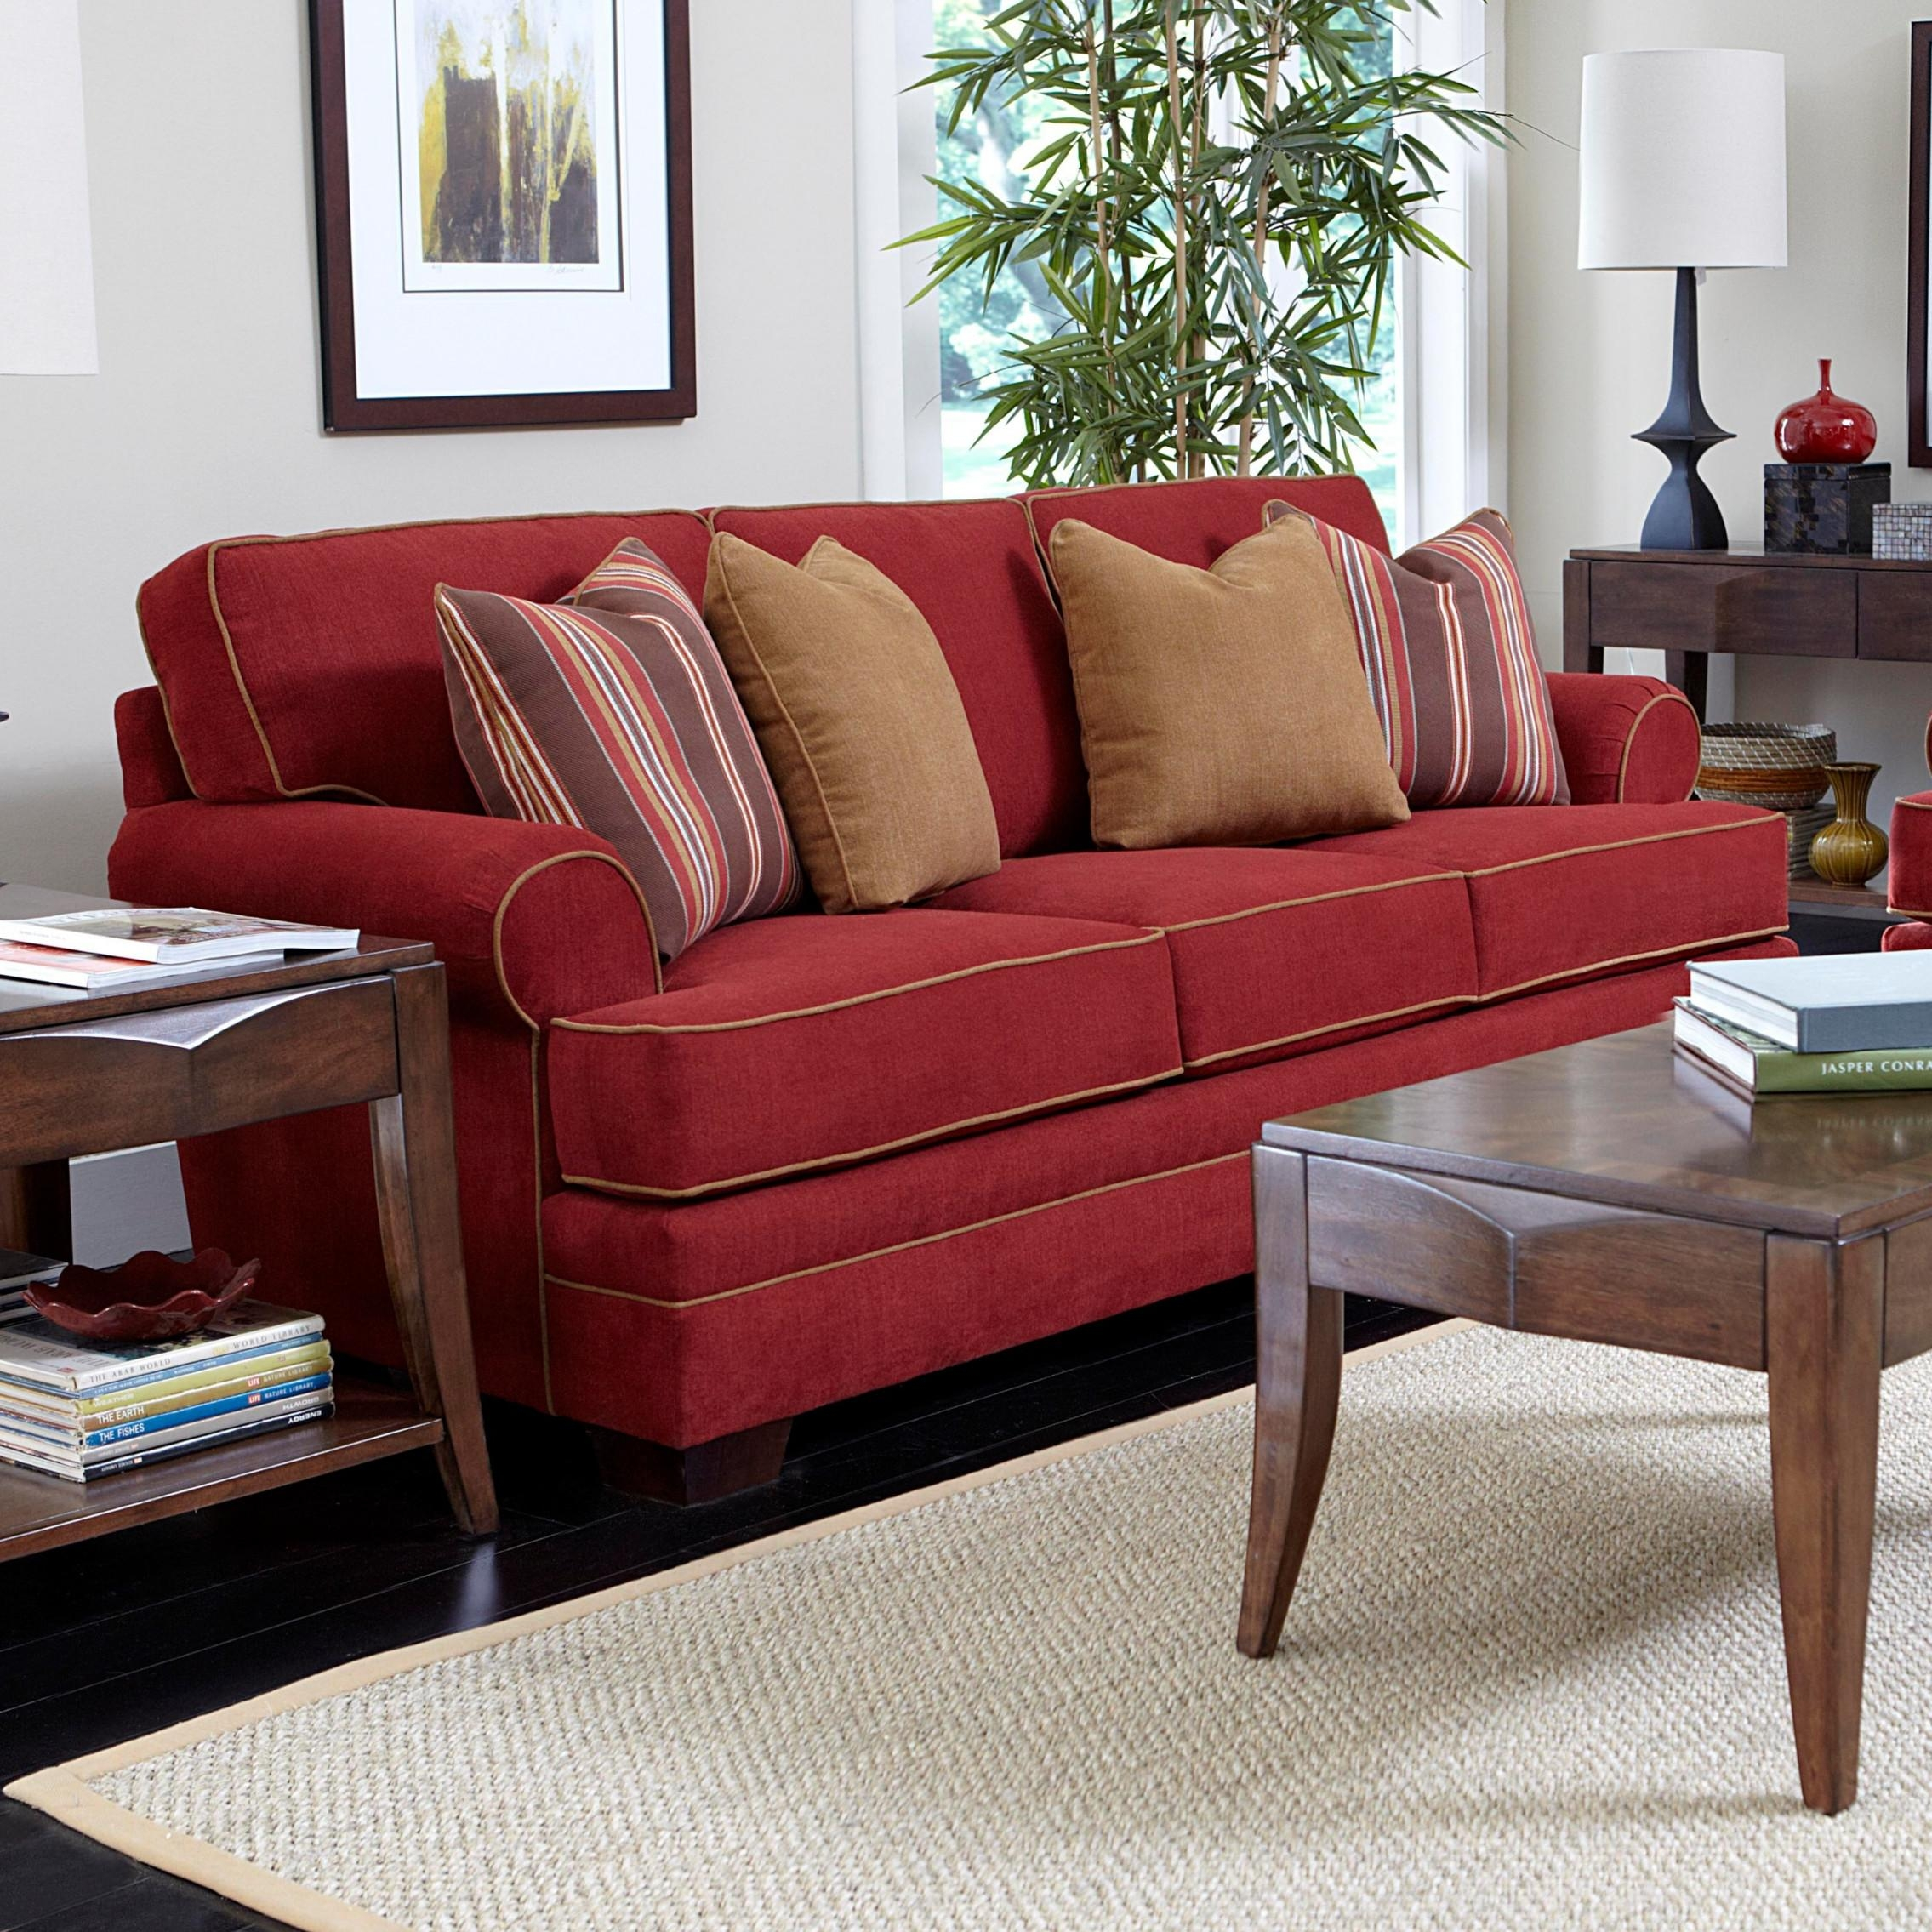 Broyhill Emily Sofa With Inspiration Hd Photos 13123 | Kengire Inside Broyhill Emily Sofas (View 11 of 20)